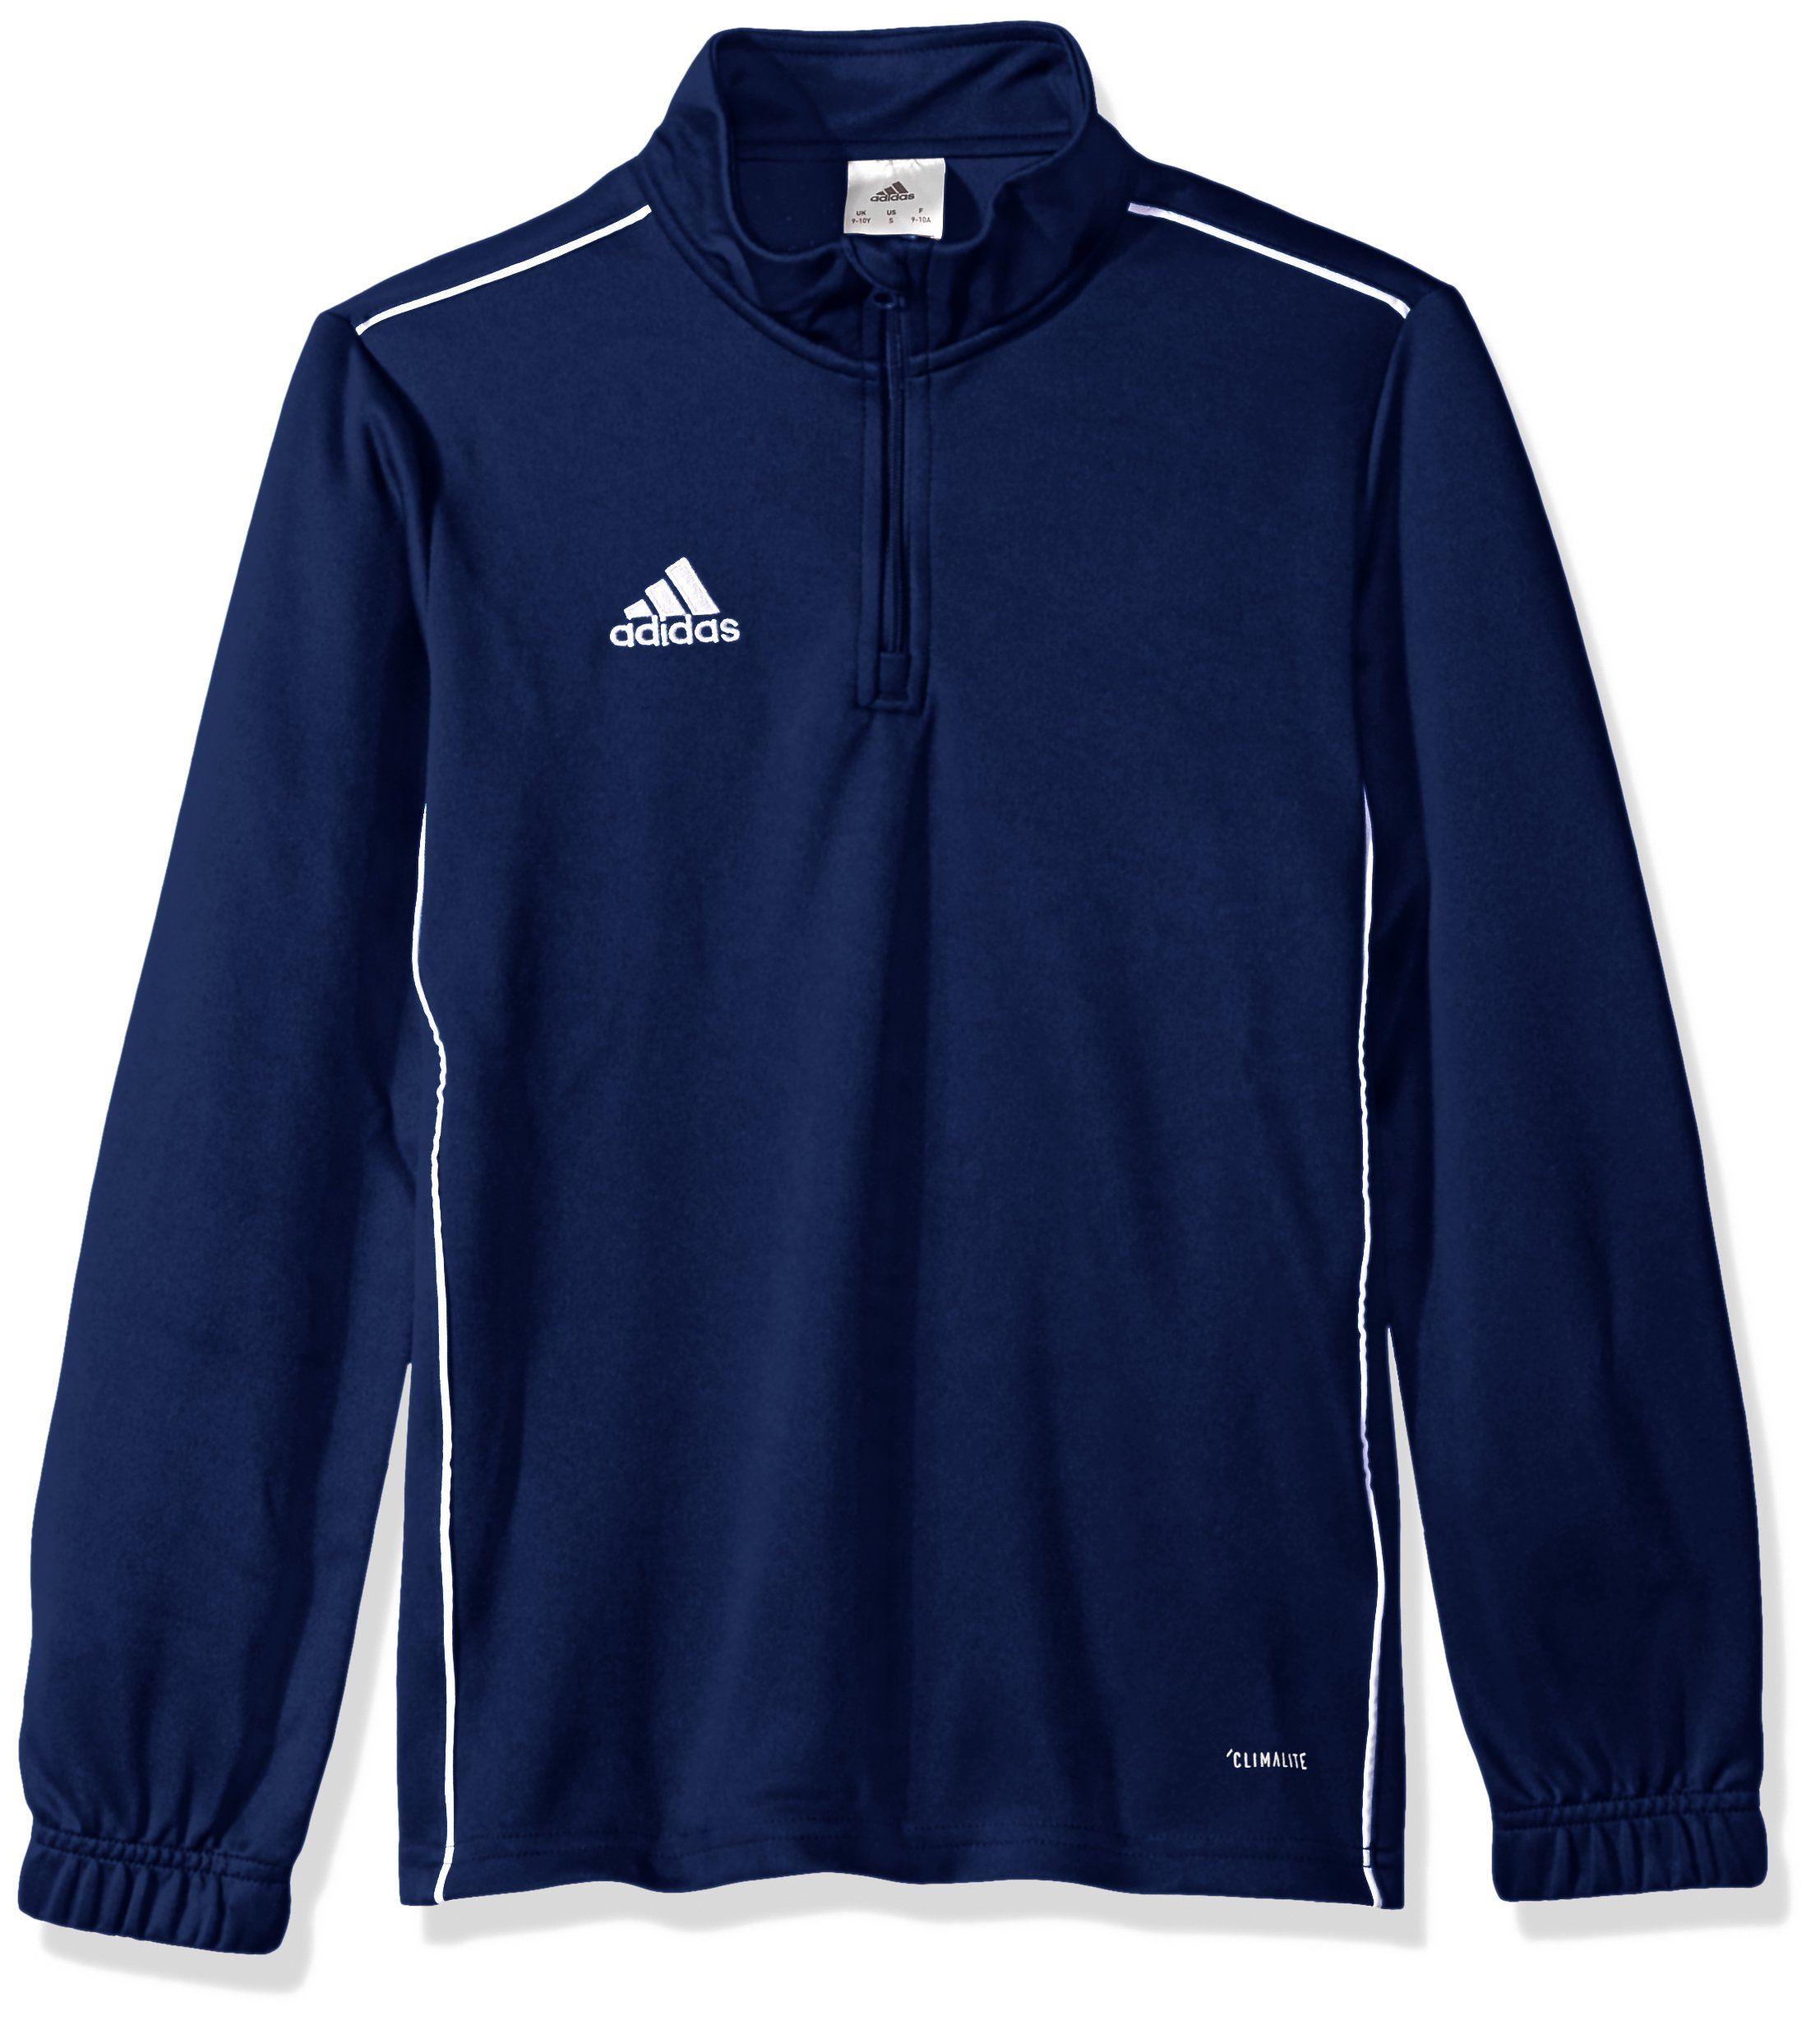 adidas Unisex Youth Soccer Core18 Training Top, Dark Blue/White, X-Small